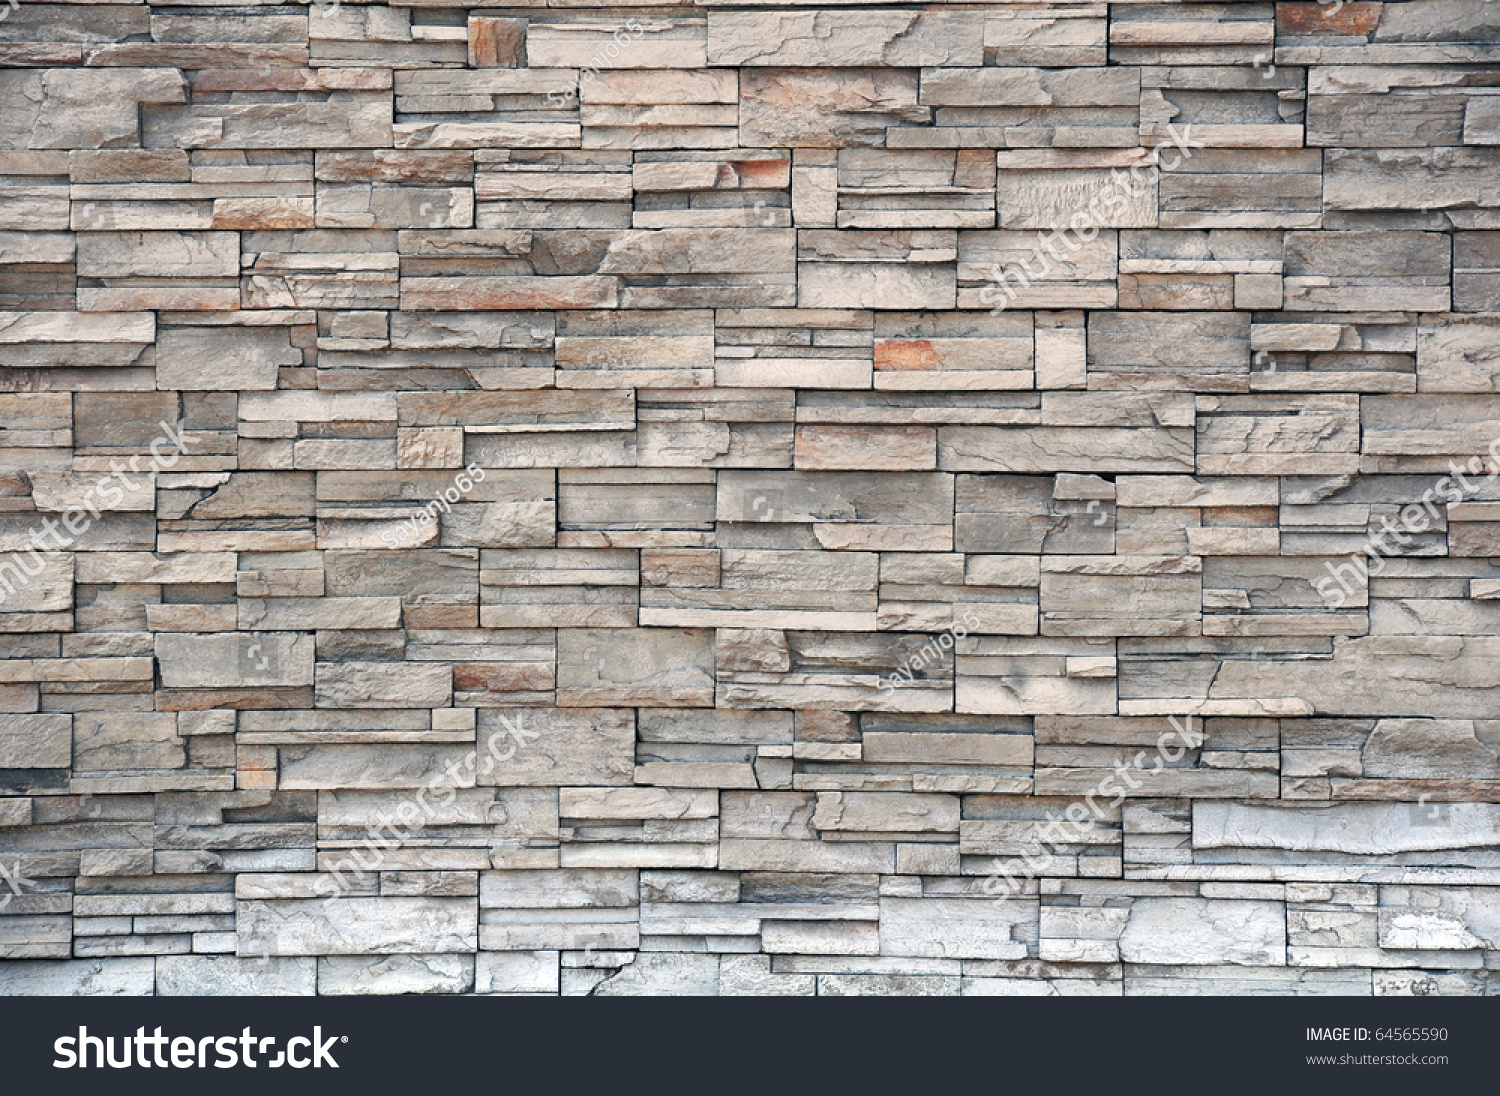 Stone Brick Wall Modern Brick Stone Wall Stock Photo